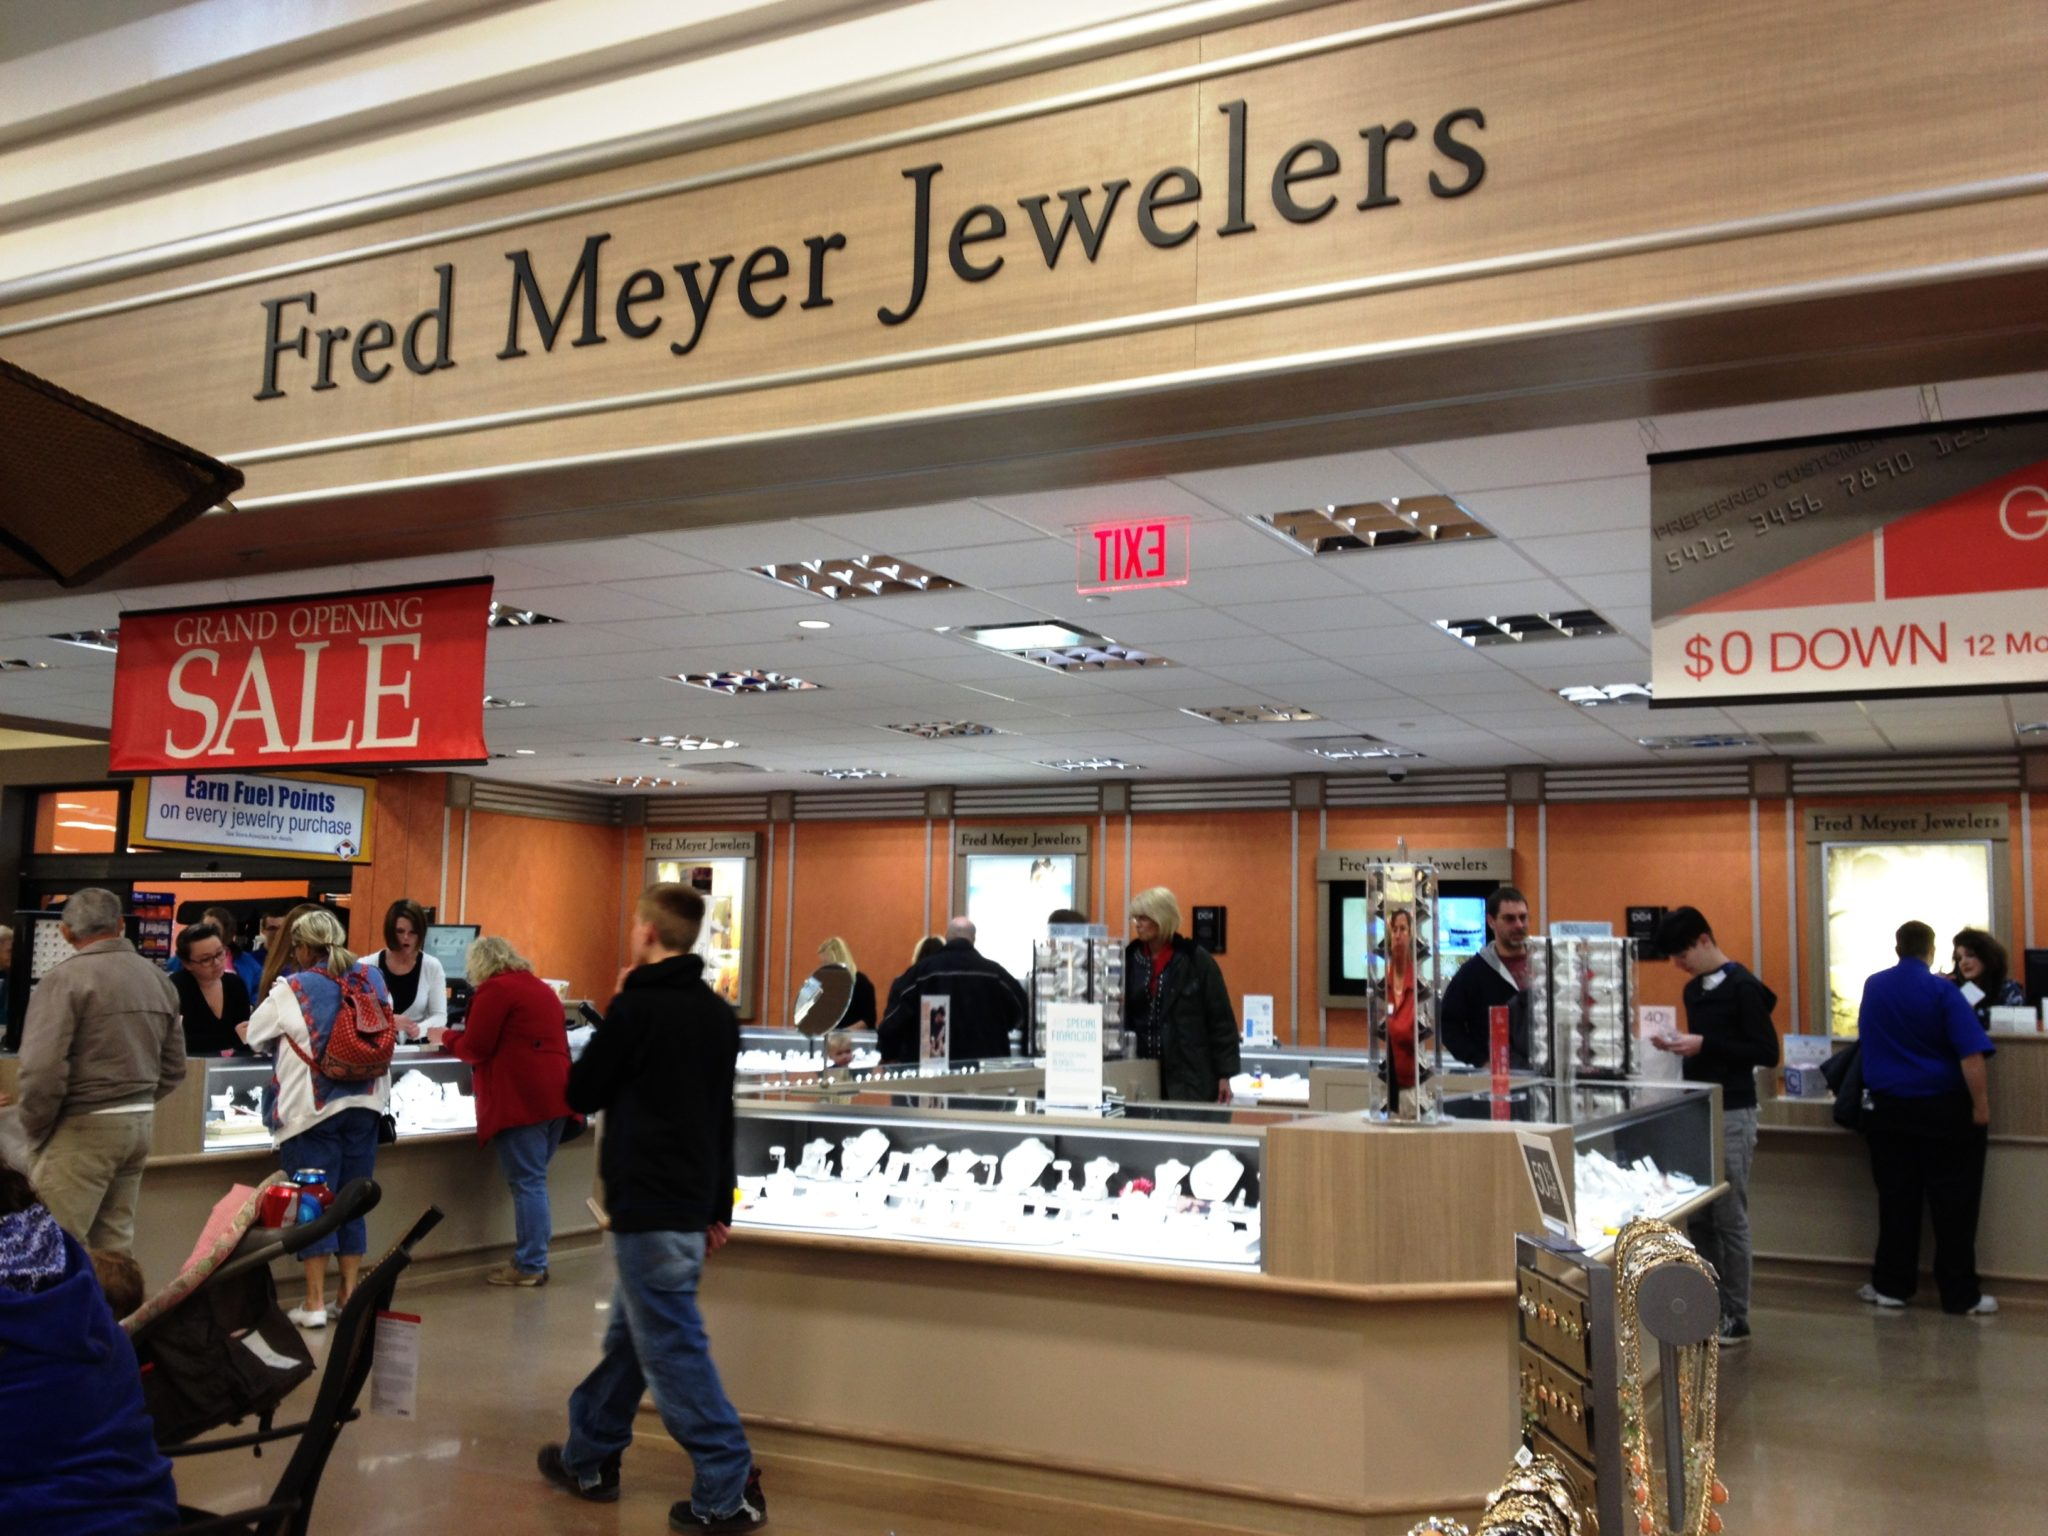 Fred Meyer Jewelers Christmas Sale & After Christmas Deals